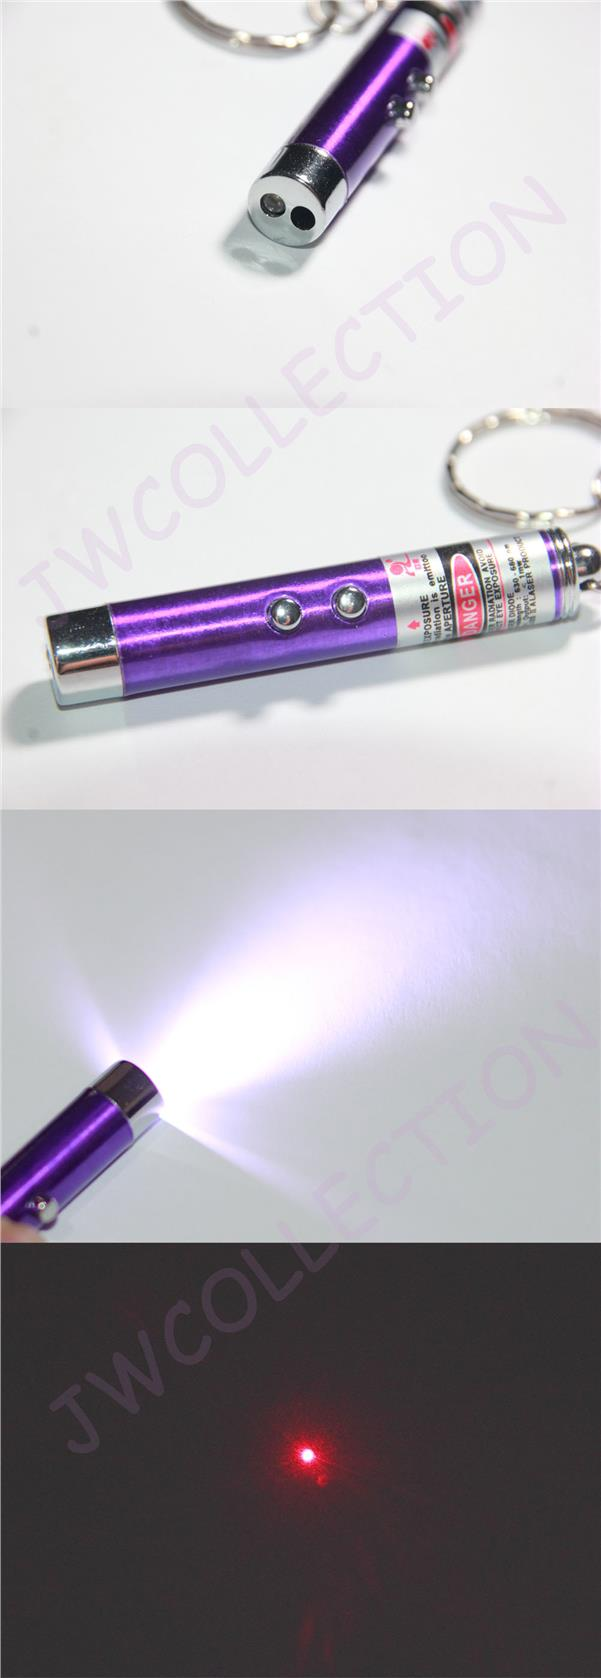 2 in 1 Laser Presentation Pointer + Touch Light